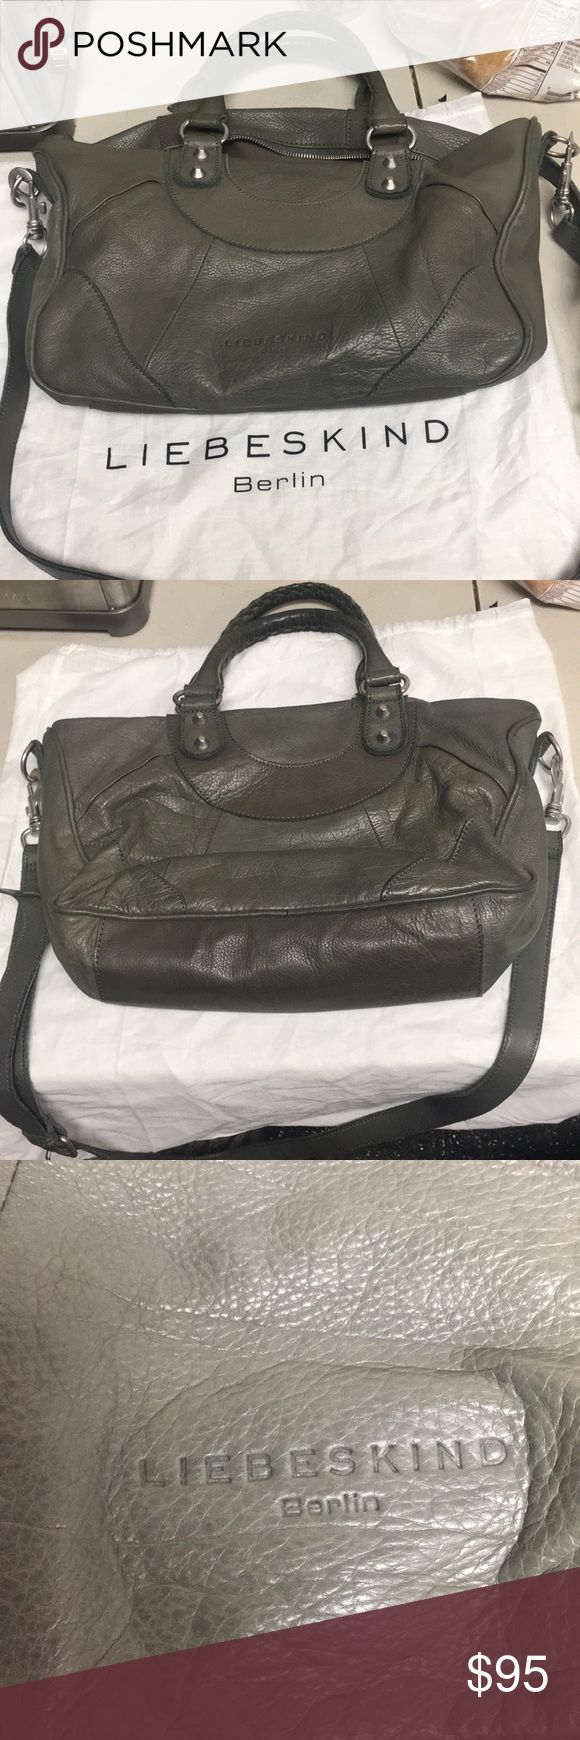 Liebeskind Berlin handbag Olive green genuine leather. Tote with crossbody strap. Several pockets and zipper compartments Inside, none outside. Very slightly used and comes with original dust bag. Liebeskind Bags Totes